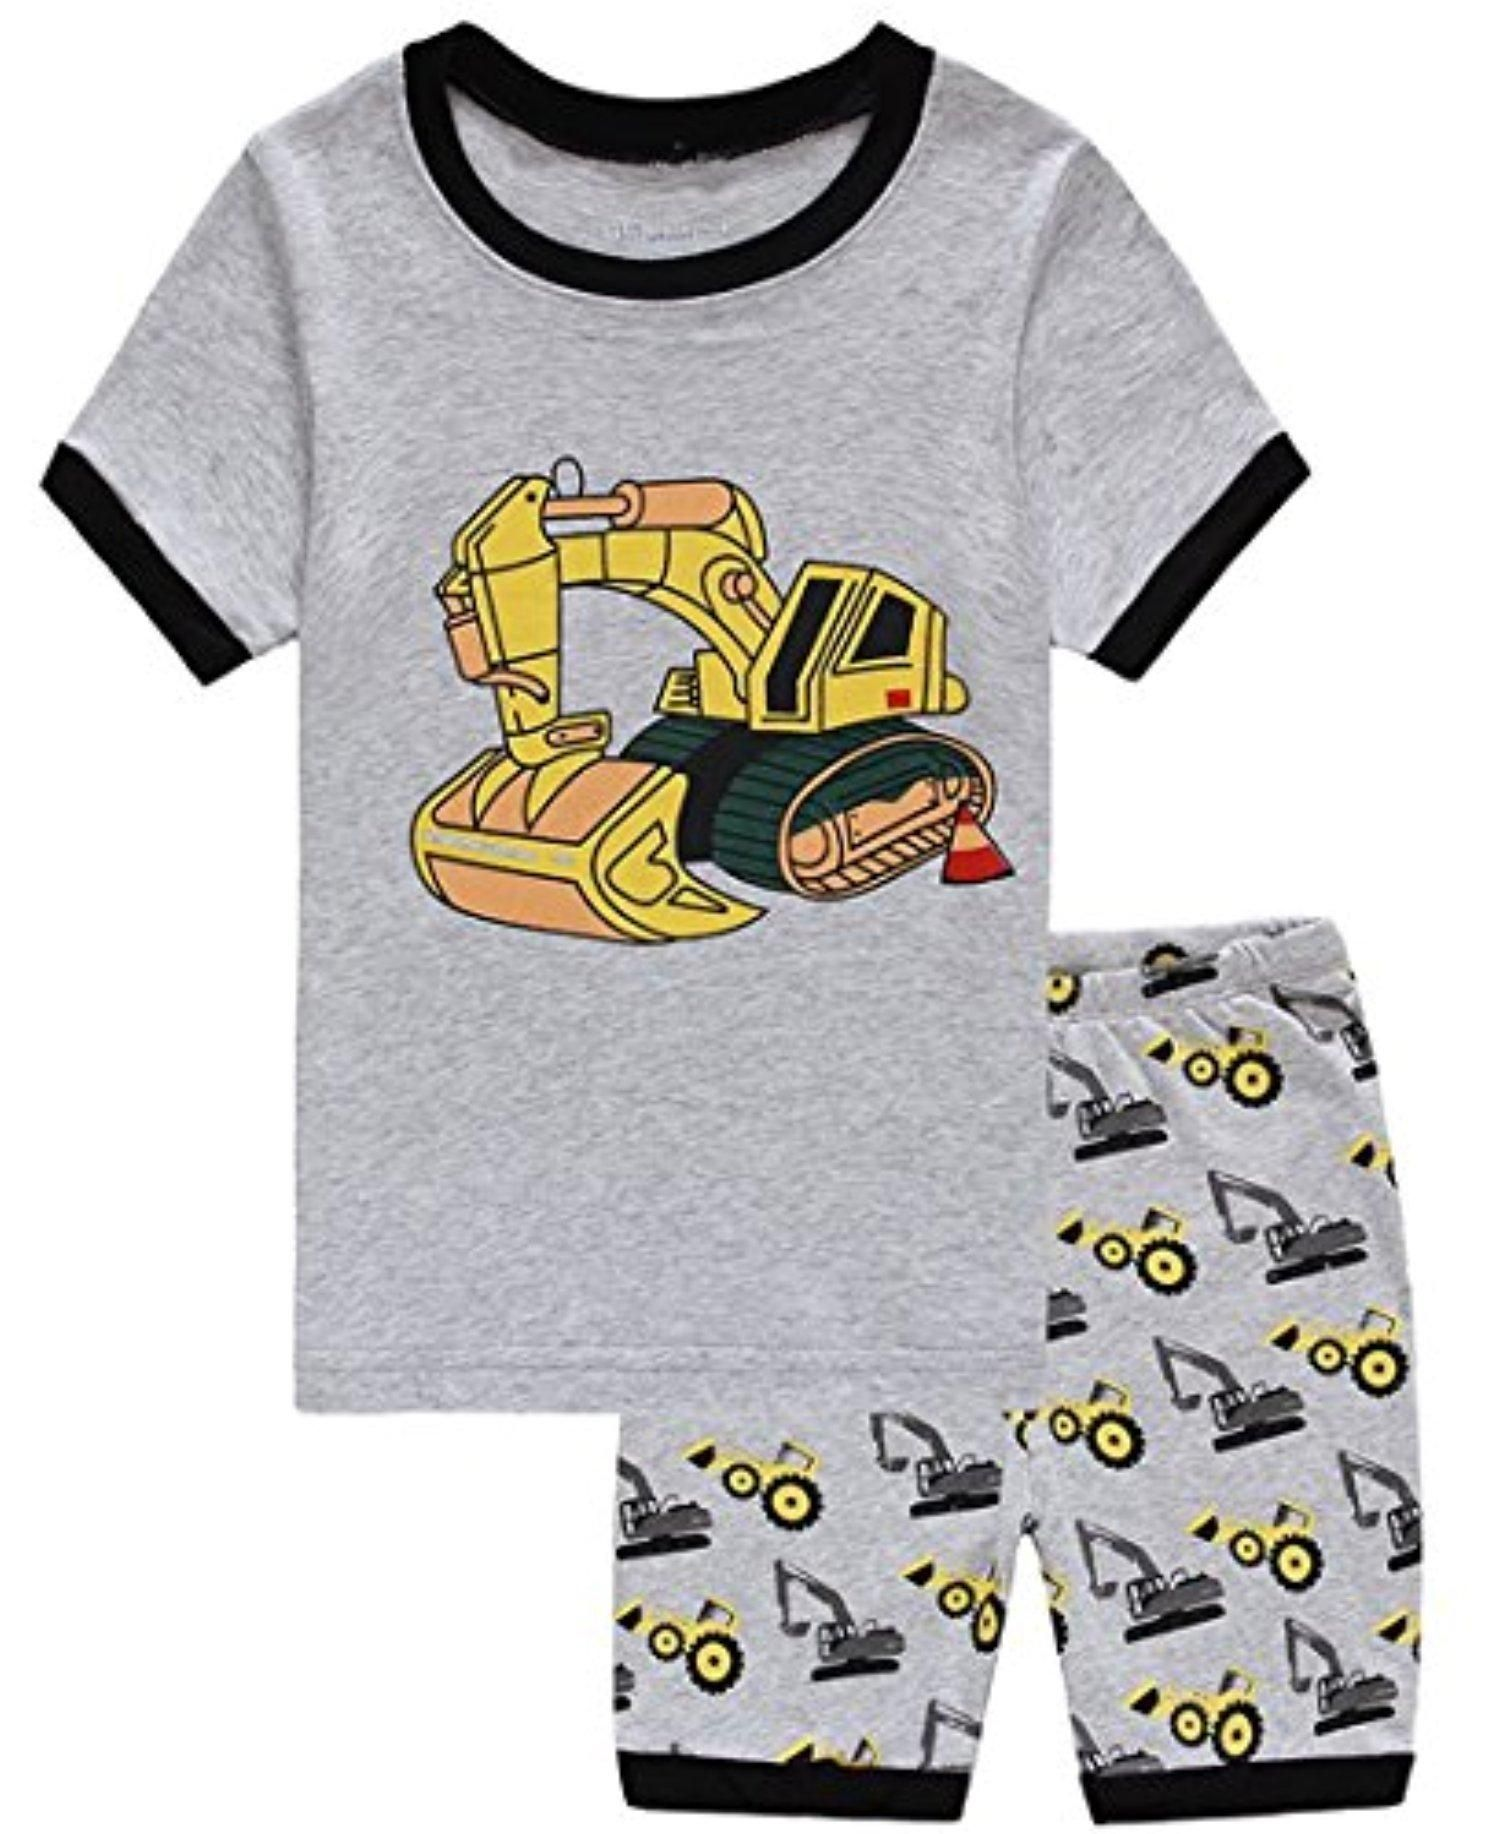 ec8a86bec3bd Babypajama Excavator Little Boys  Summer Shorts Pajamas Set 100% Cotton Pjs  Size 5 Years - Brought to you by Avarsha.com